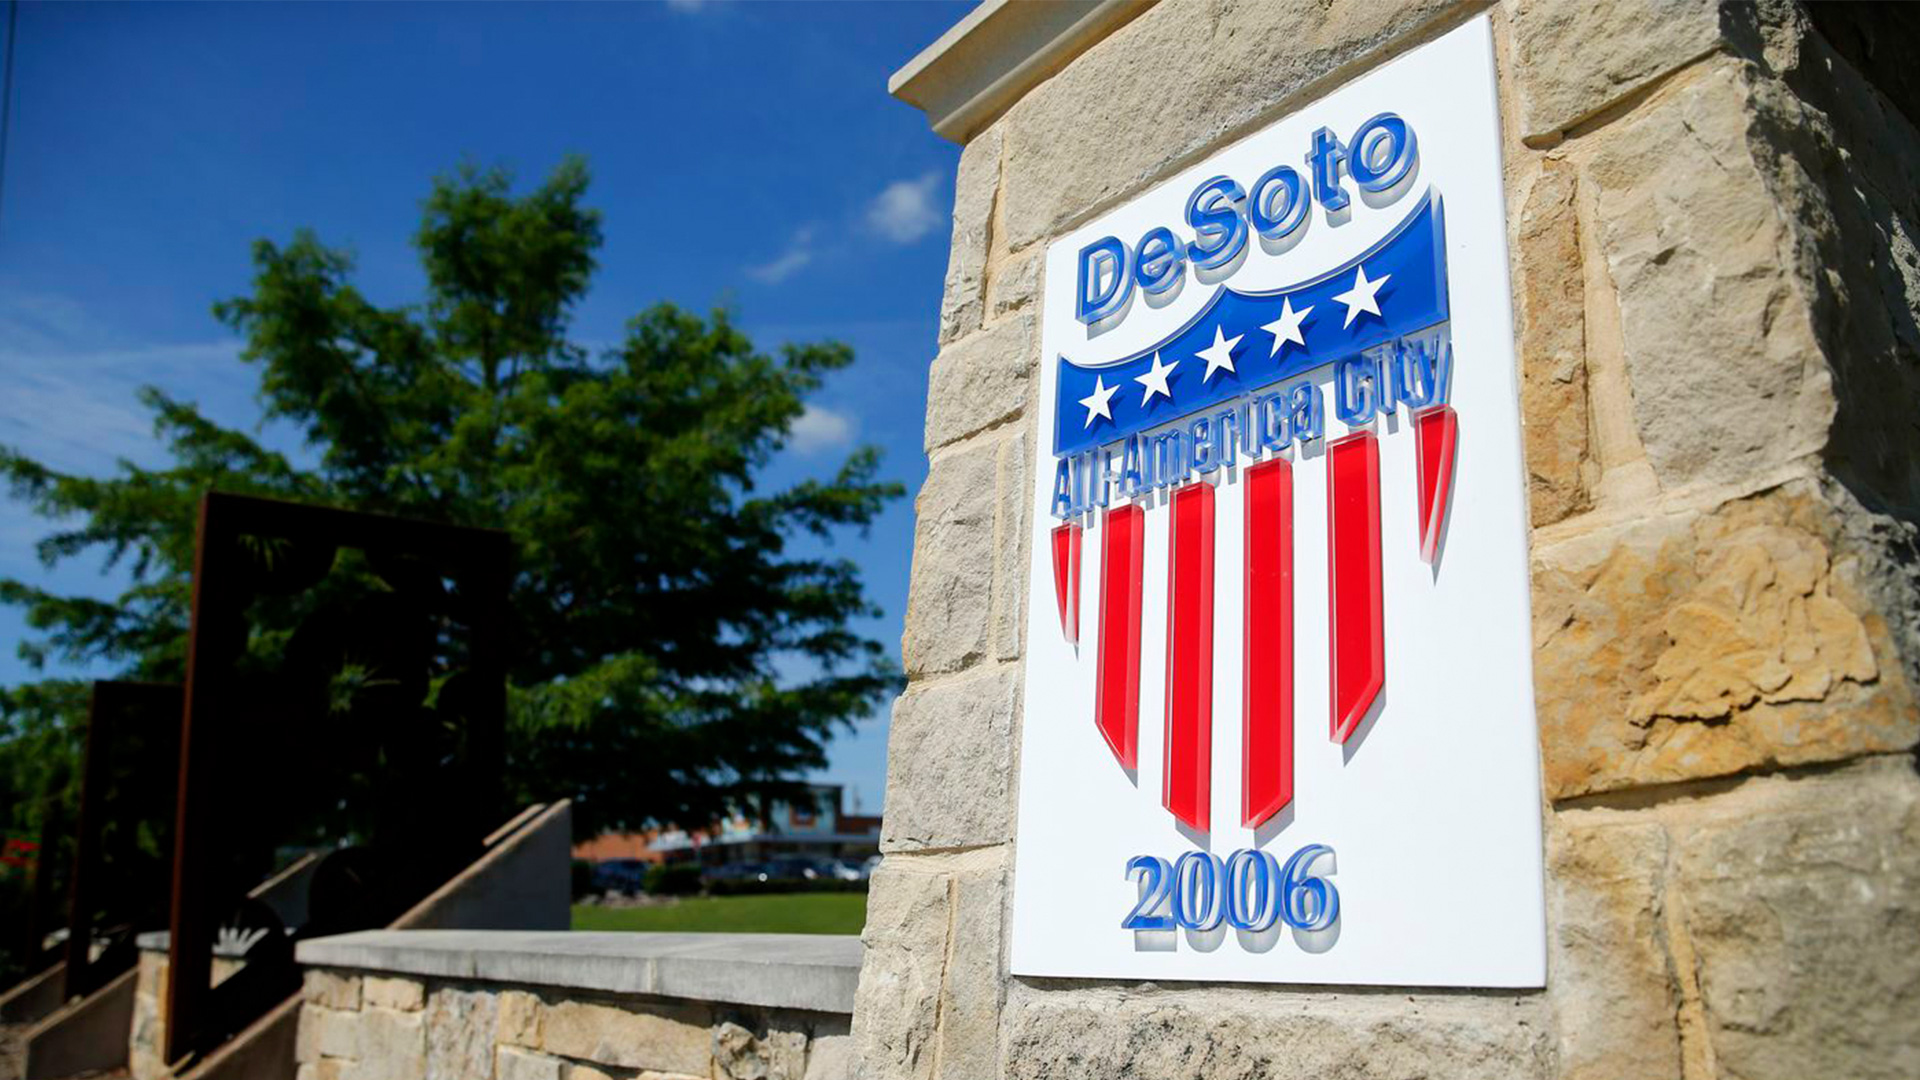 Sign for the City of Desoto